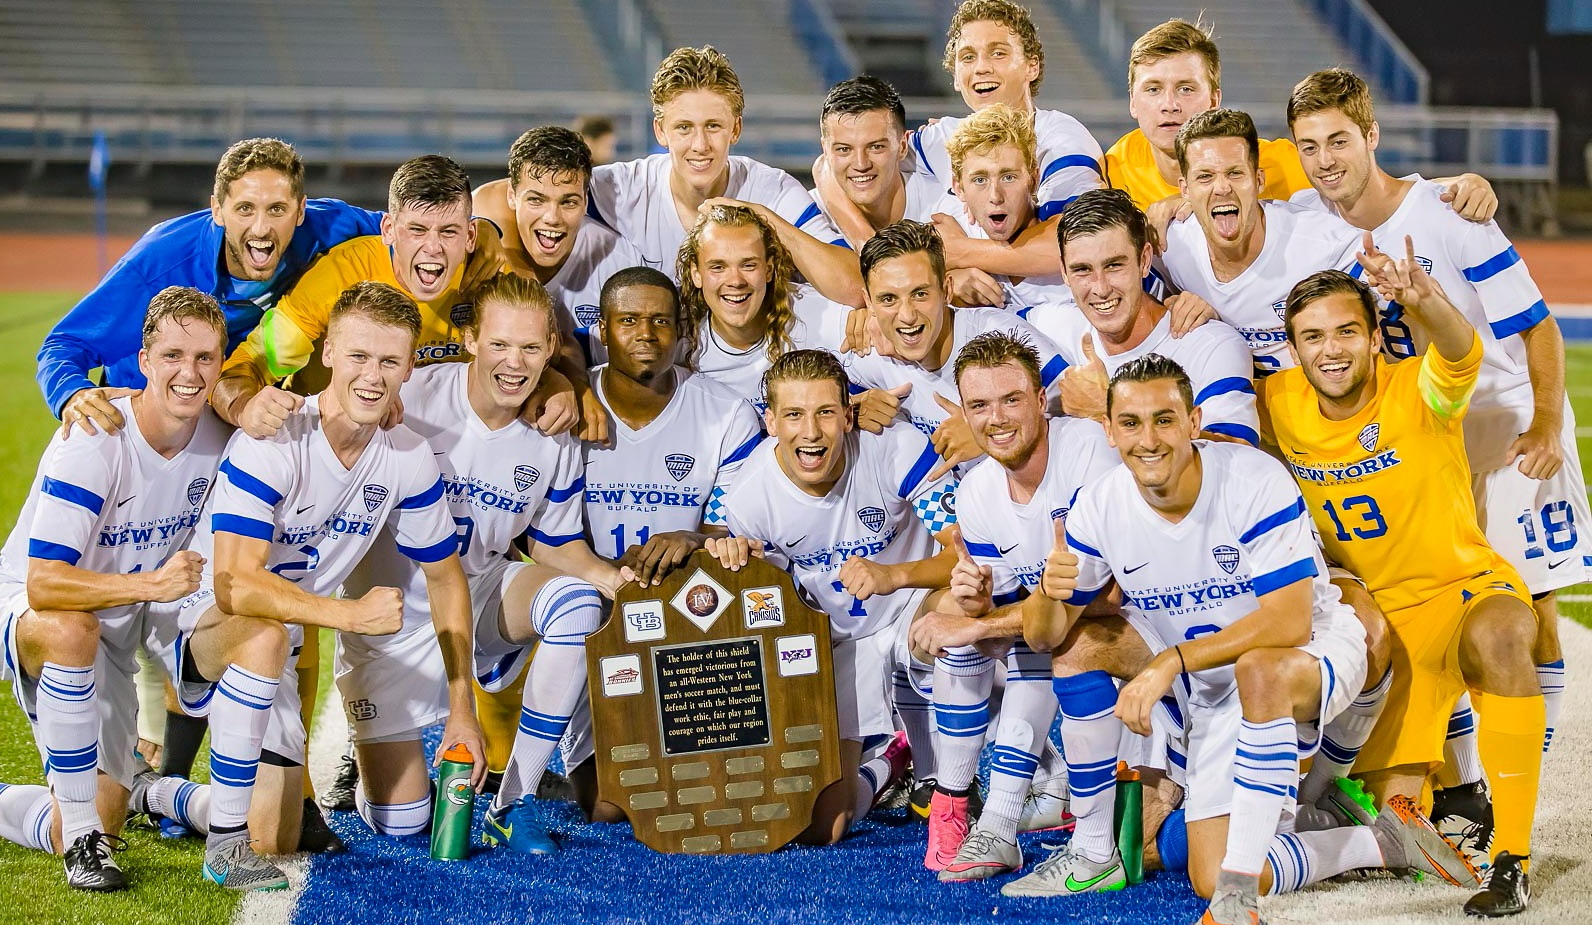 The UB Bulls won the Big 4 Shield from Canisius, then protected it against Niagara in penalty kicks. (Don Nieman/Special to The News)